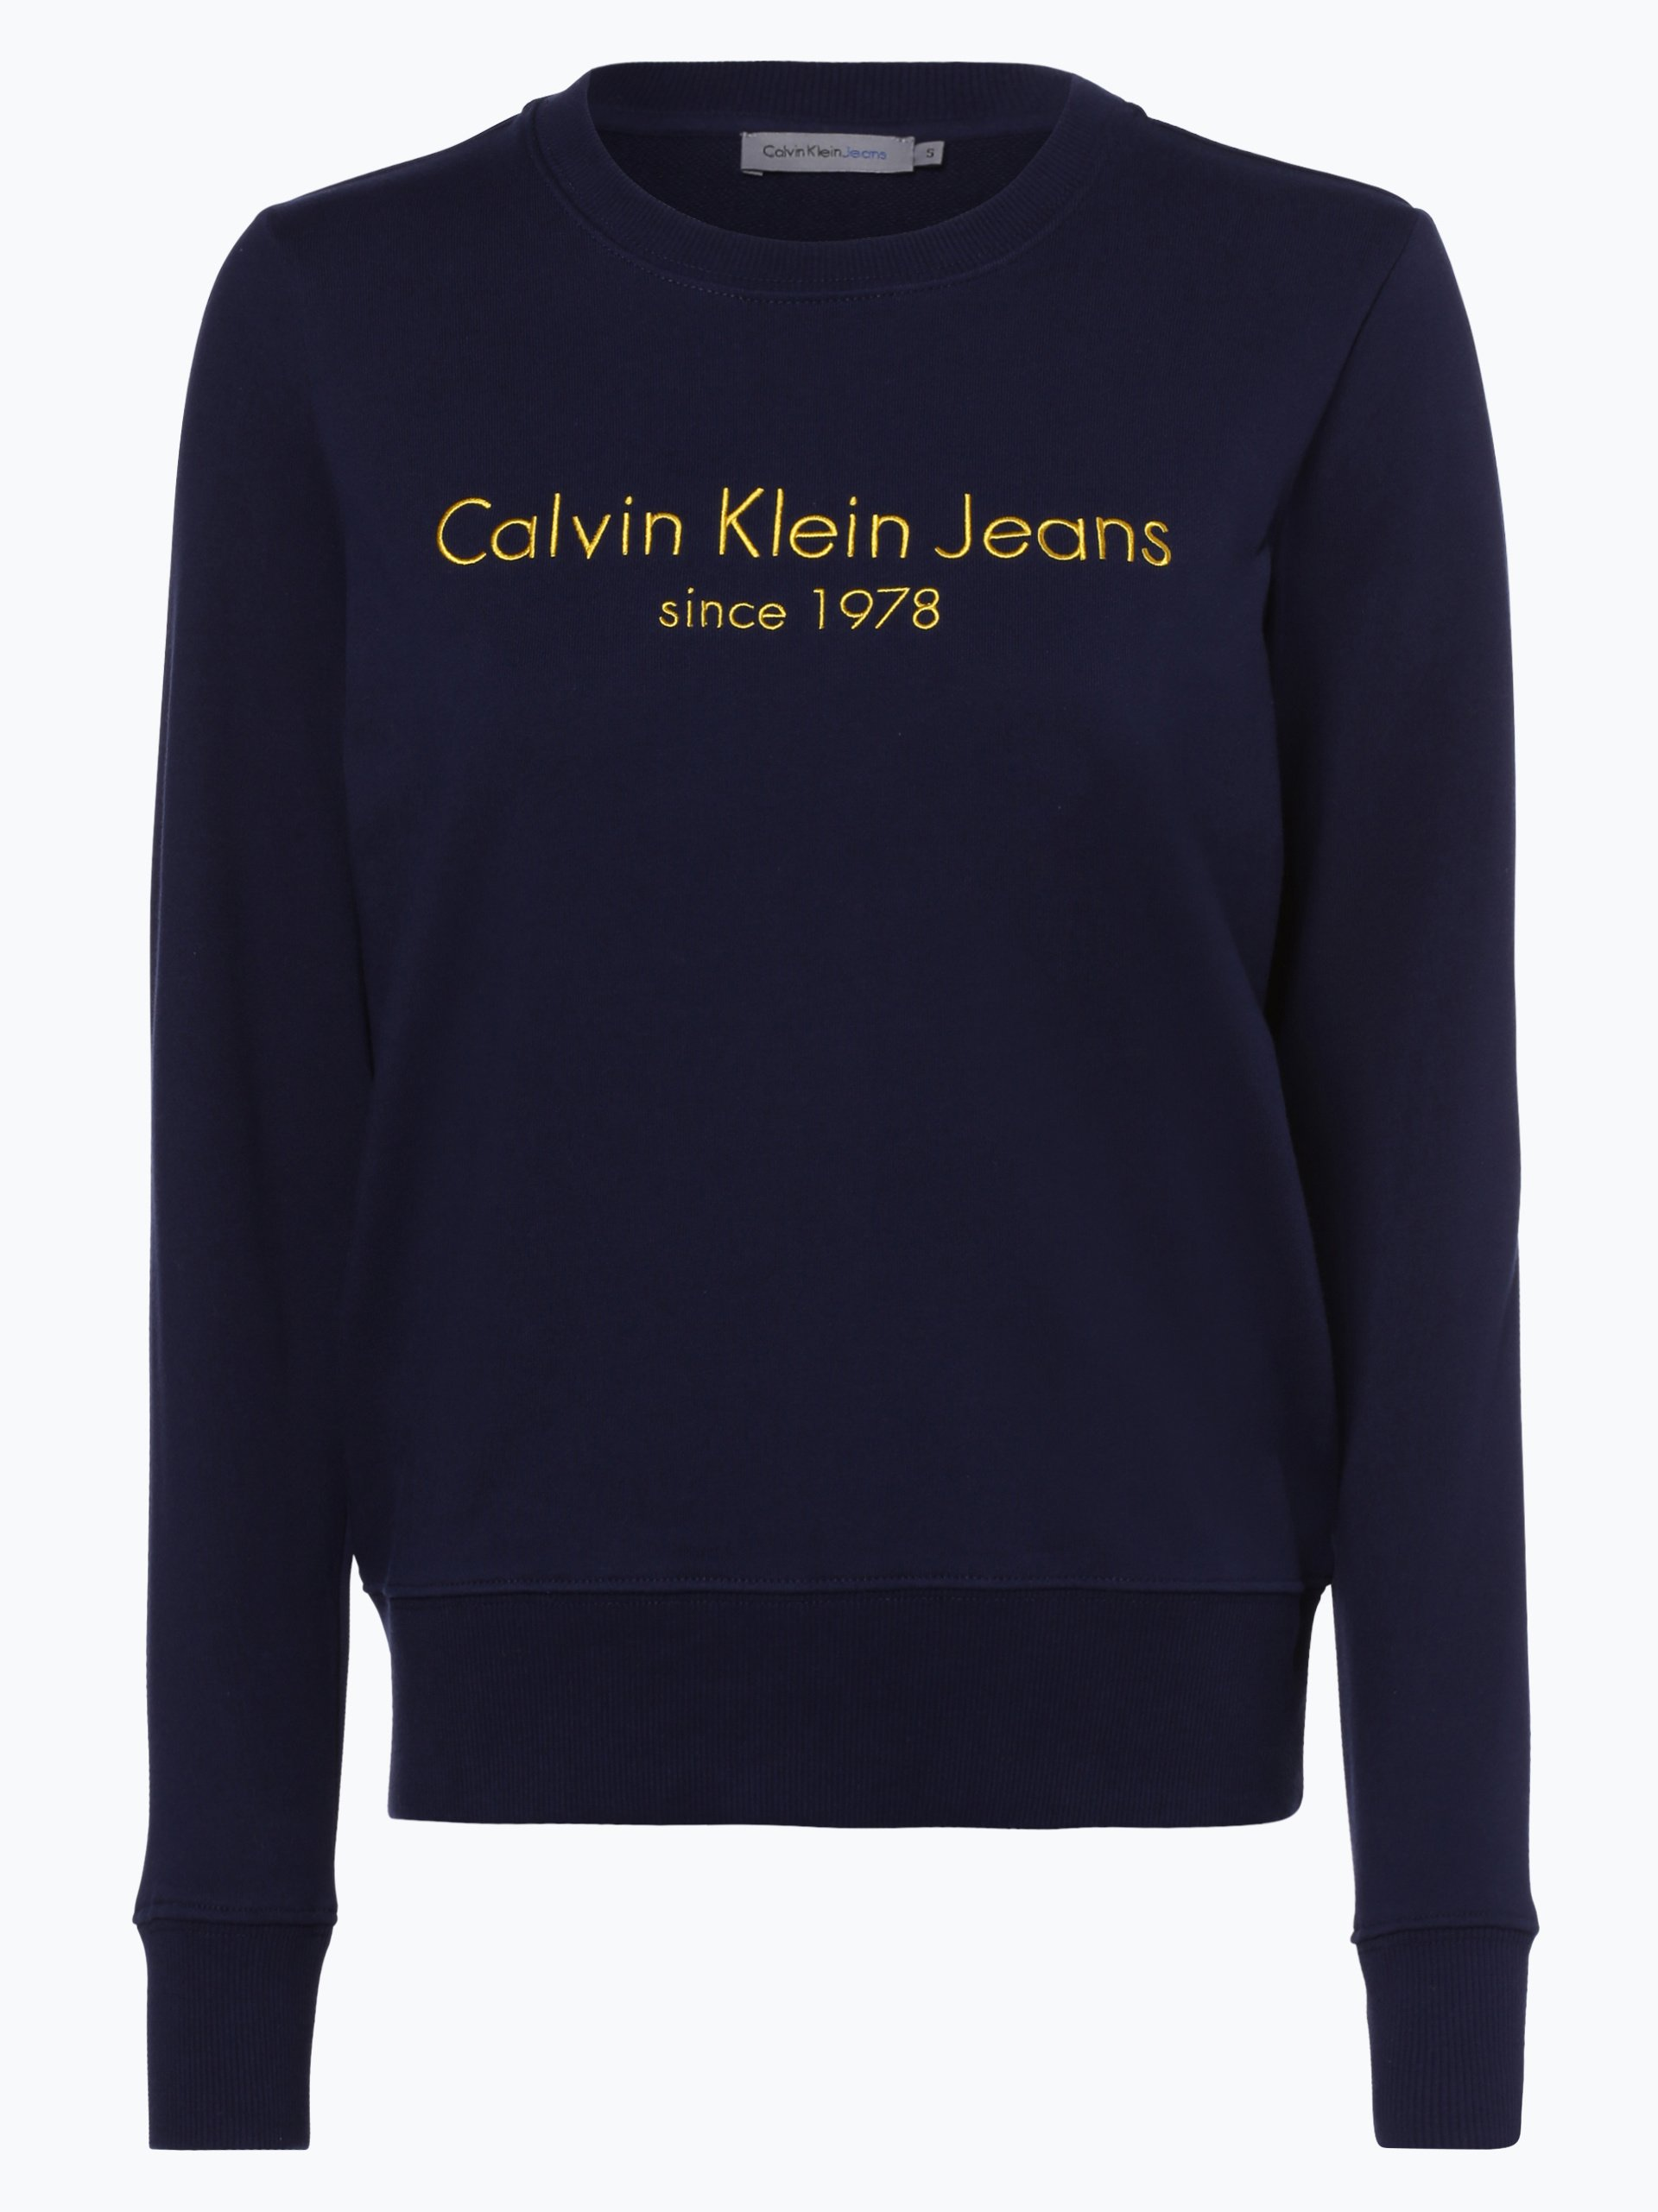 calvin klein jeans damen sweatshirt marine uni online. Black Bedroom Furniture Sets. Home Design Ideas